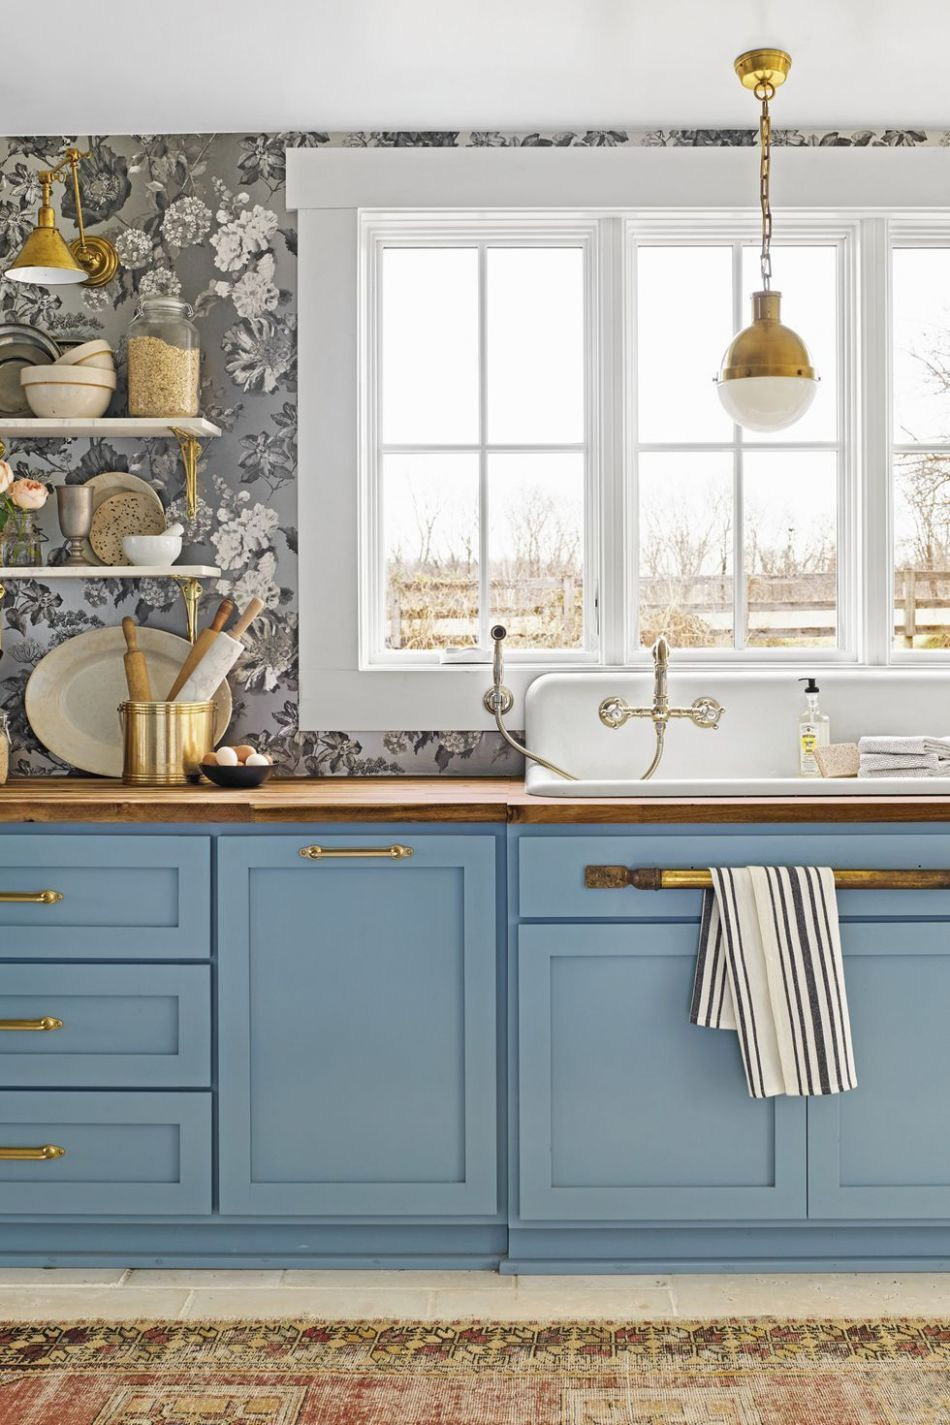 10 Kitchen Trends 10 - New Cabinet and Color Design Ideas